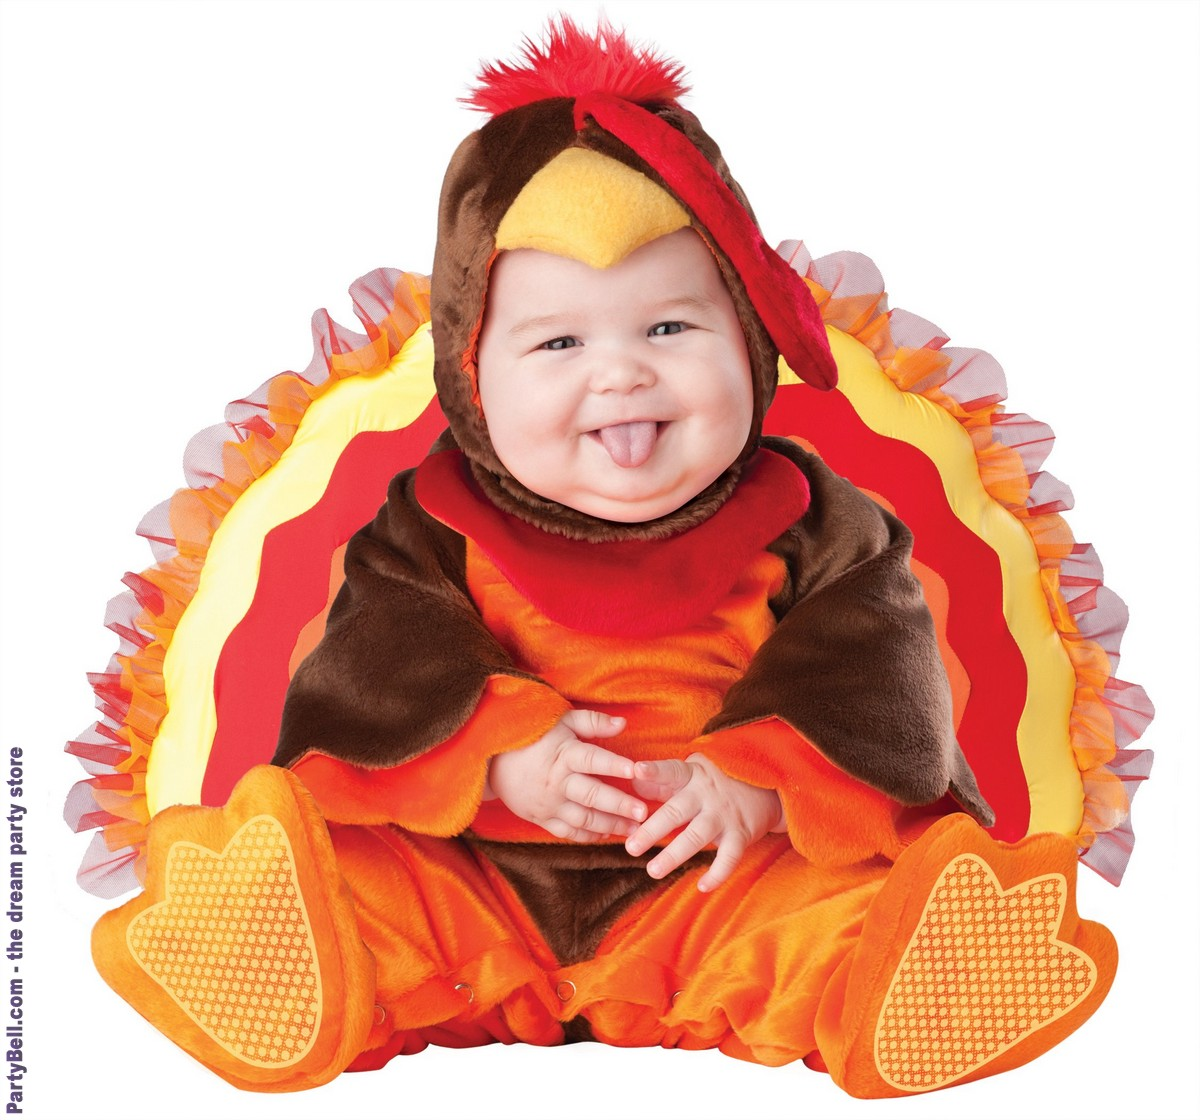 Sweet functional preemie, newborn, baby and infant costumes - cute toddler costumes that will make your little boy or girl smile, and some of the hottest children's costumes! Funny baby costumes, cute baby costumes, scary baby costumes, pretty baby costumes, storybook baby costumes and more - you'll enjoy a fabulous selection.